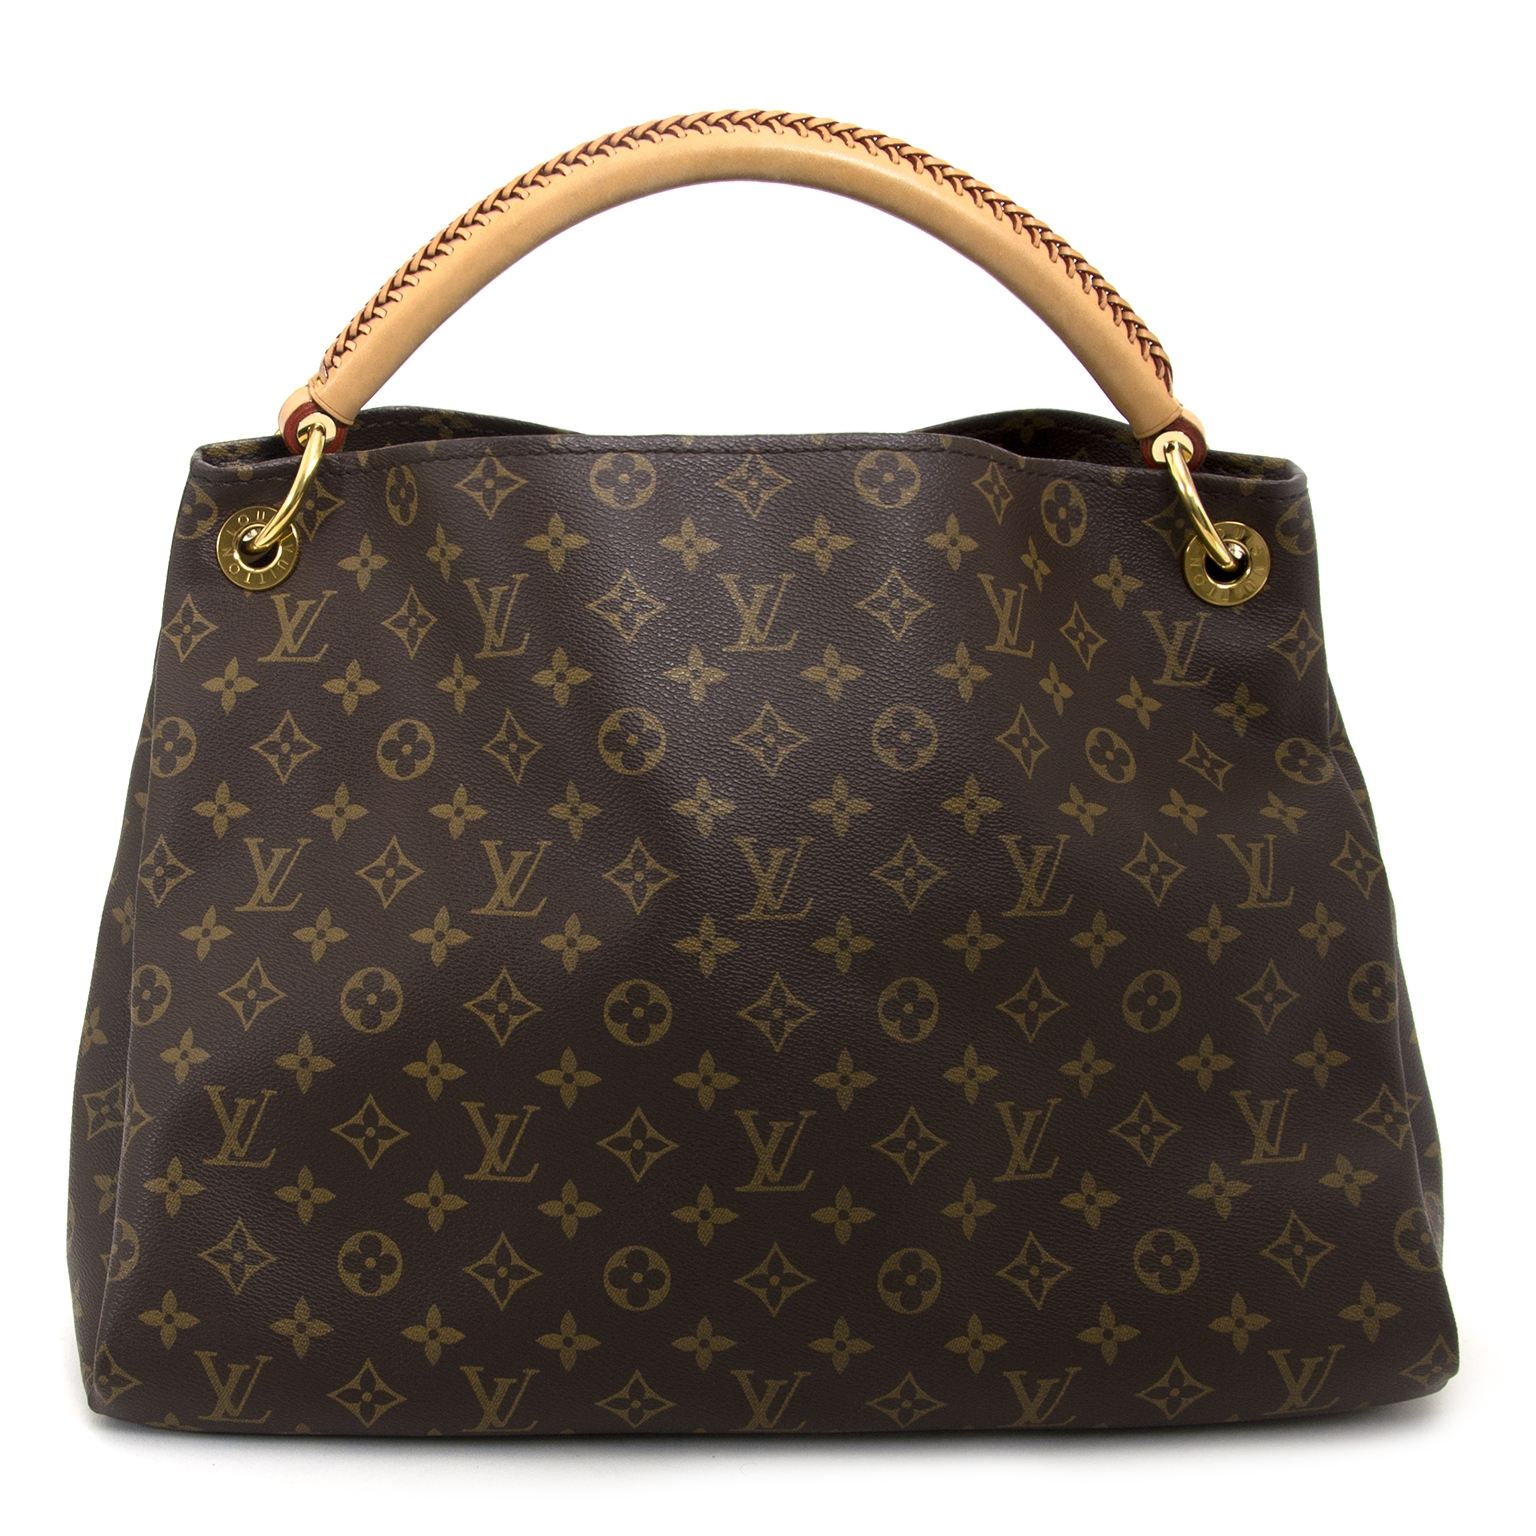 ... buy Louis Vuitton Monogram Artsy MM and pay save online at labellov.com 42ee71afafdb7